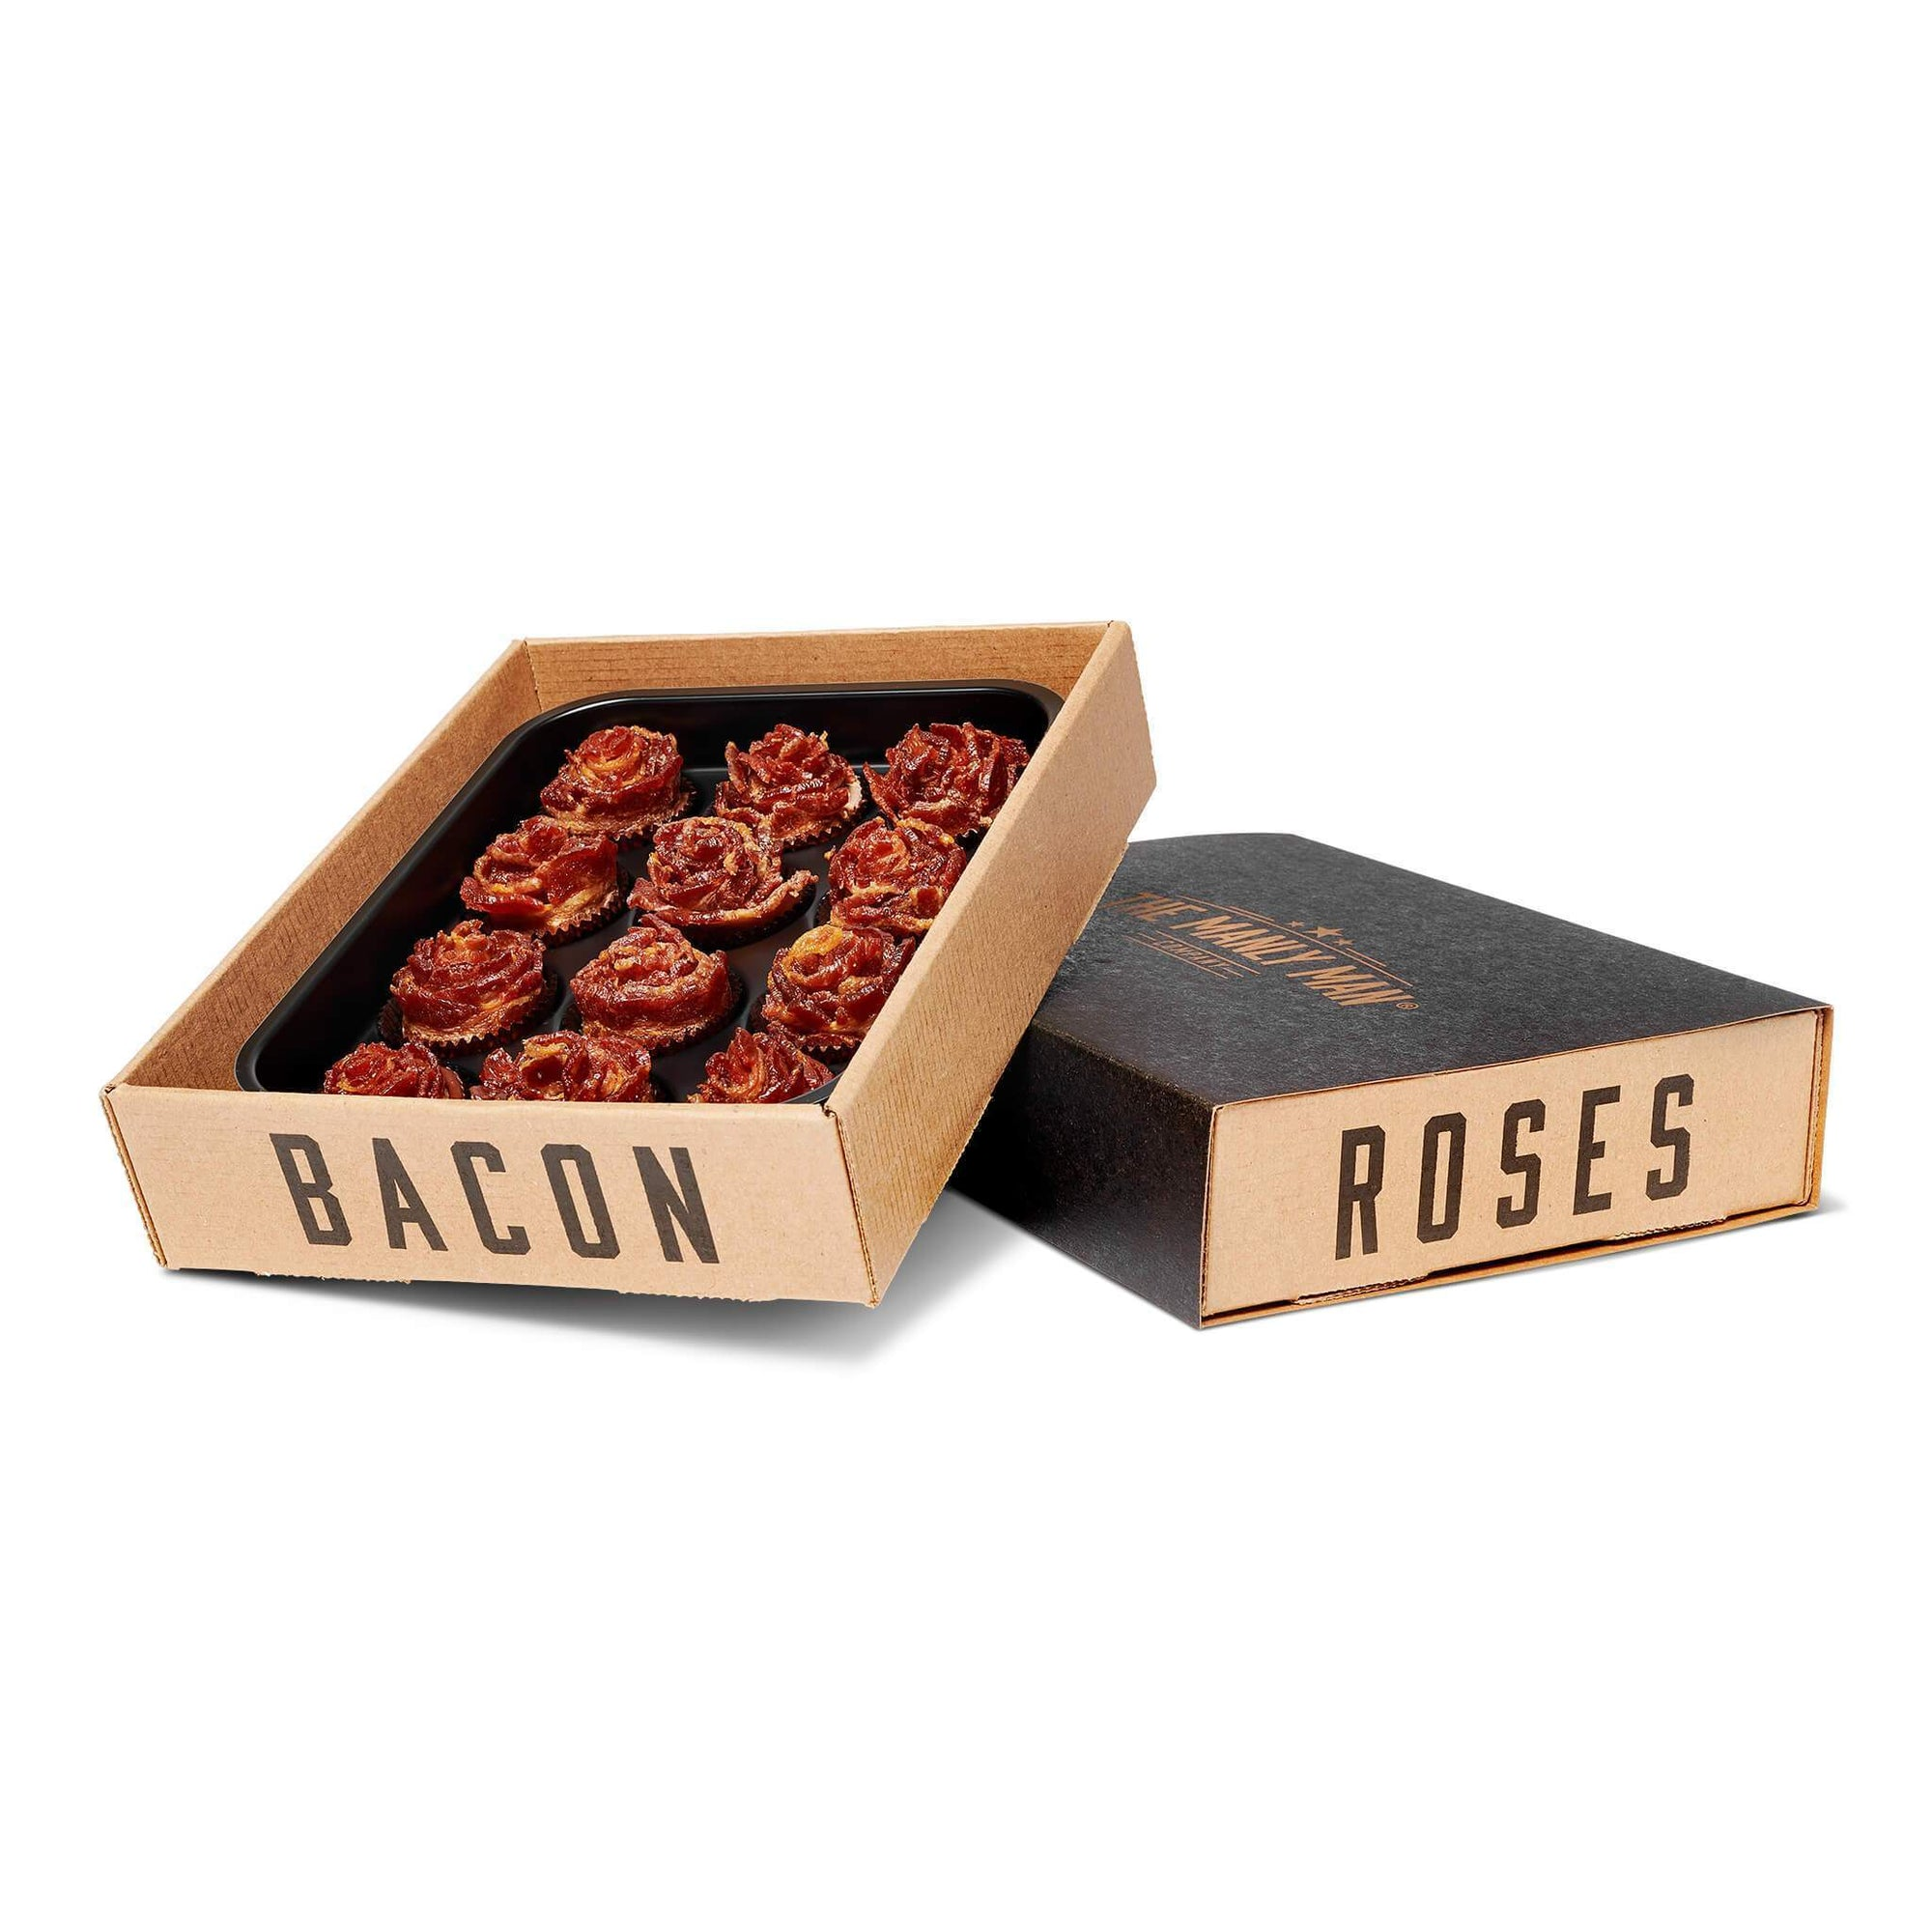 The Manly Man Company, Inc BACON ROSES + Dark Chocolate Full Dozen